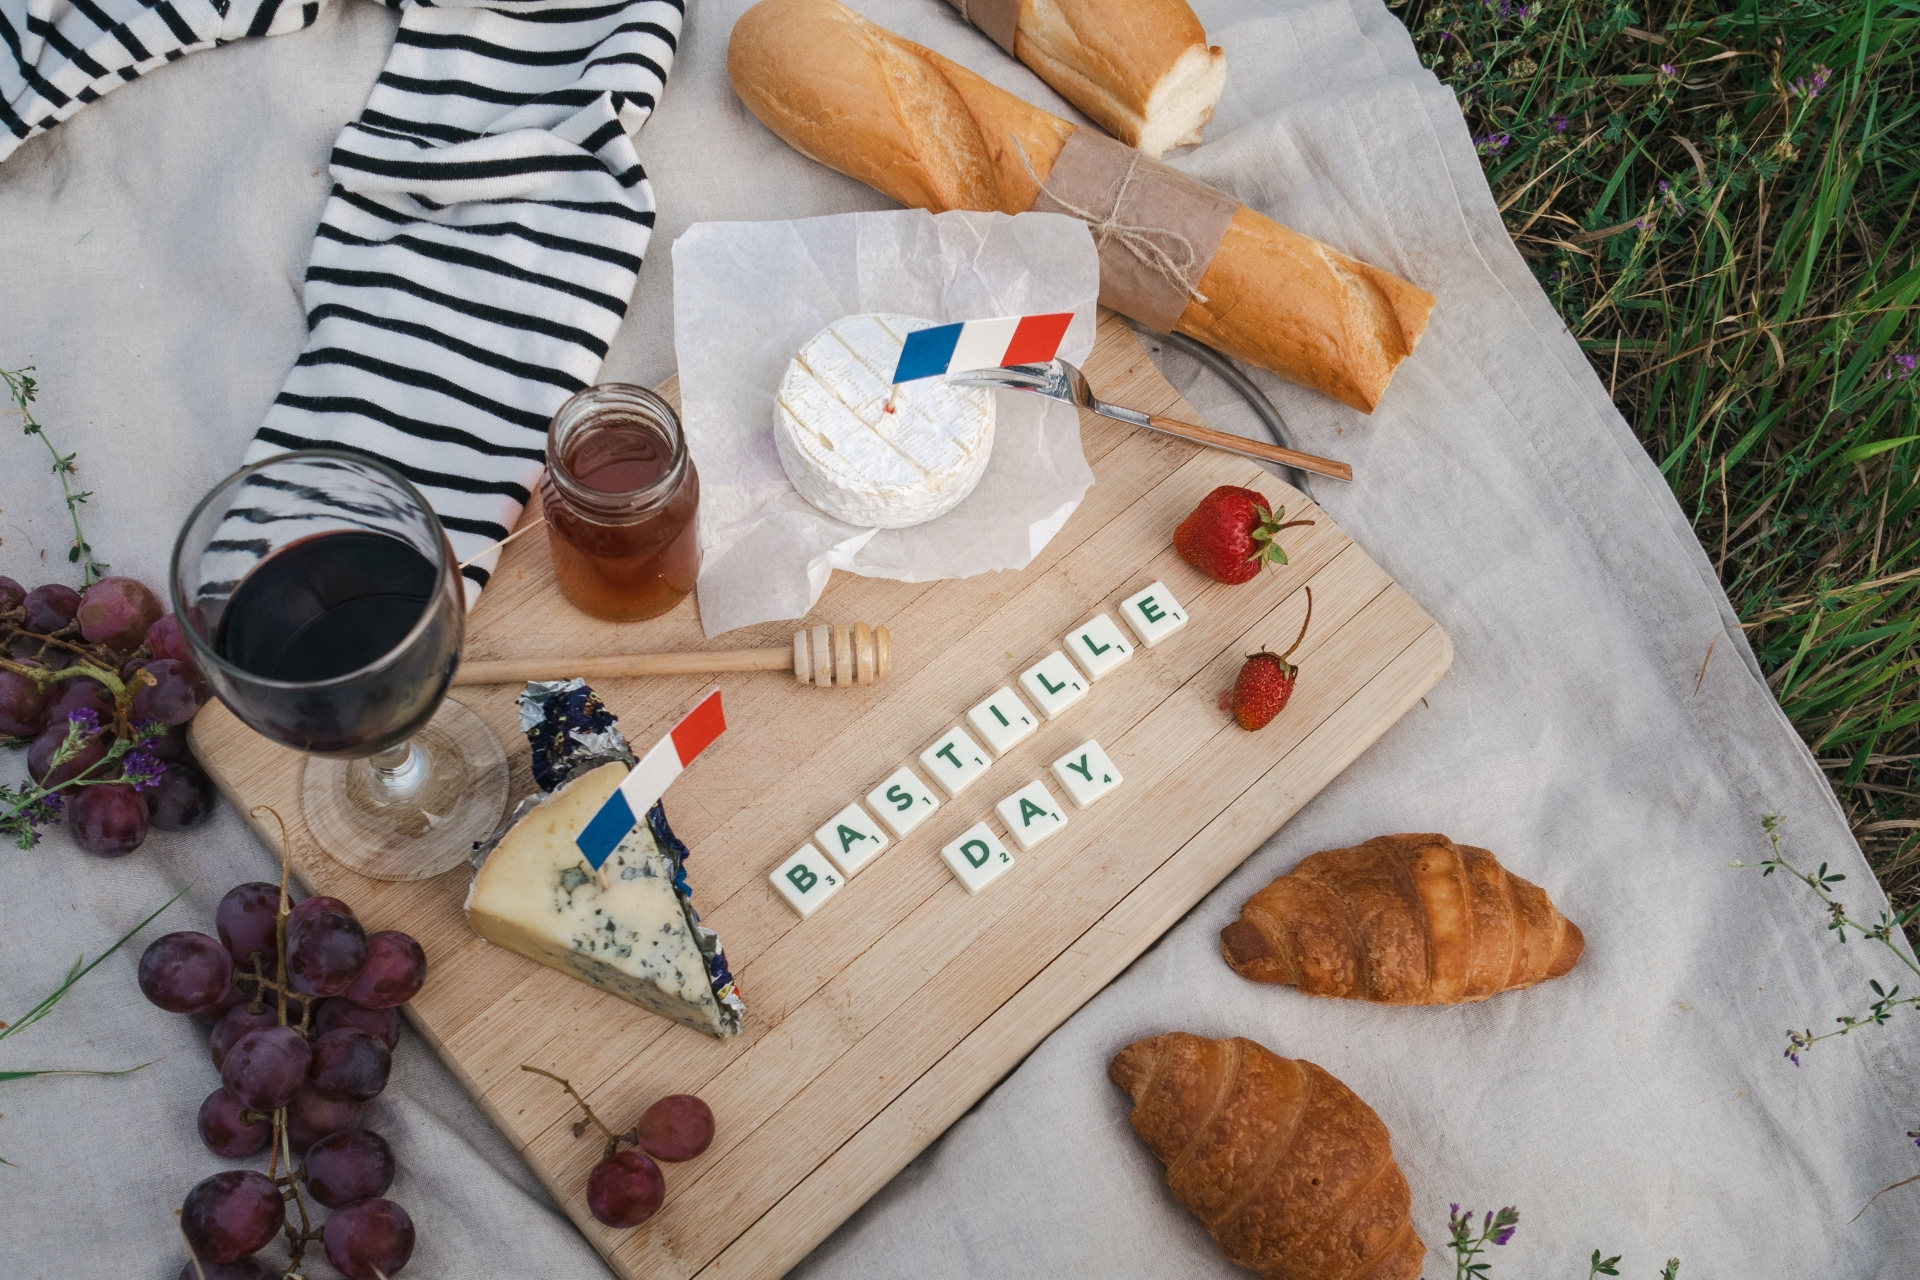 Celebrate Bastille Day 2021 with this Feast of Novels with French Connections